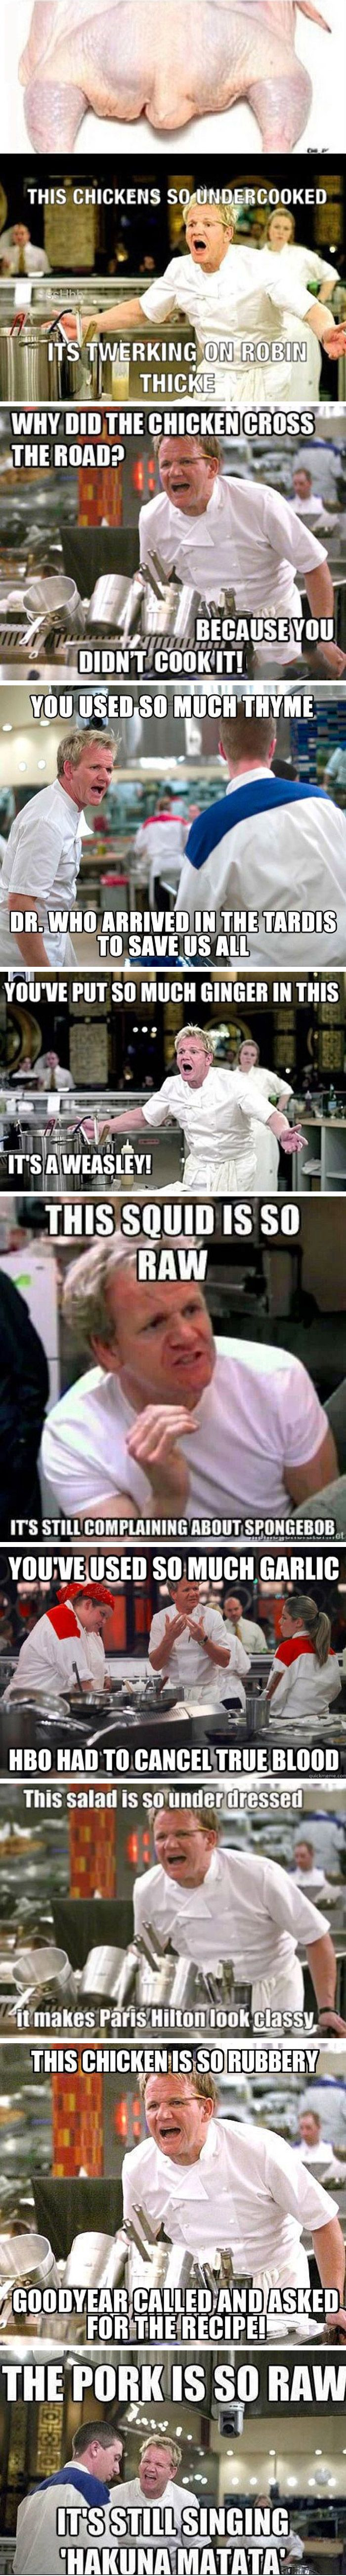 Gordon Ramsay anger. Oh my heavenly hash I died when I read these #wdspublishing (how can i lose weight)